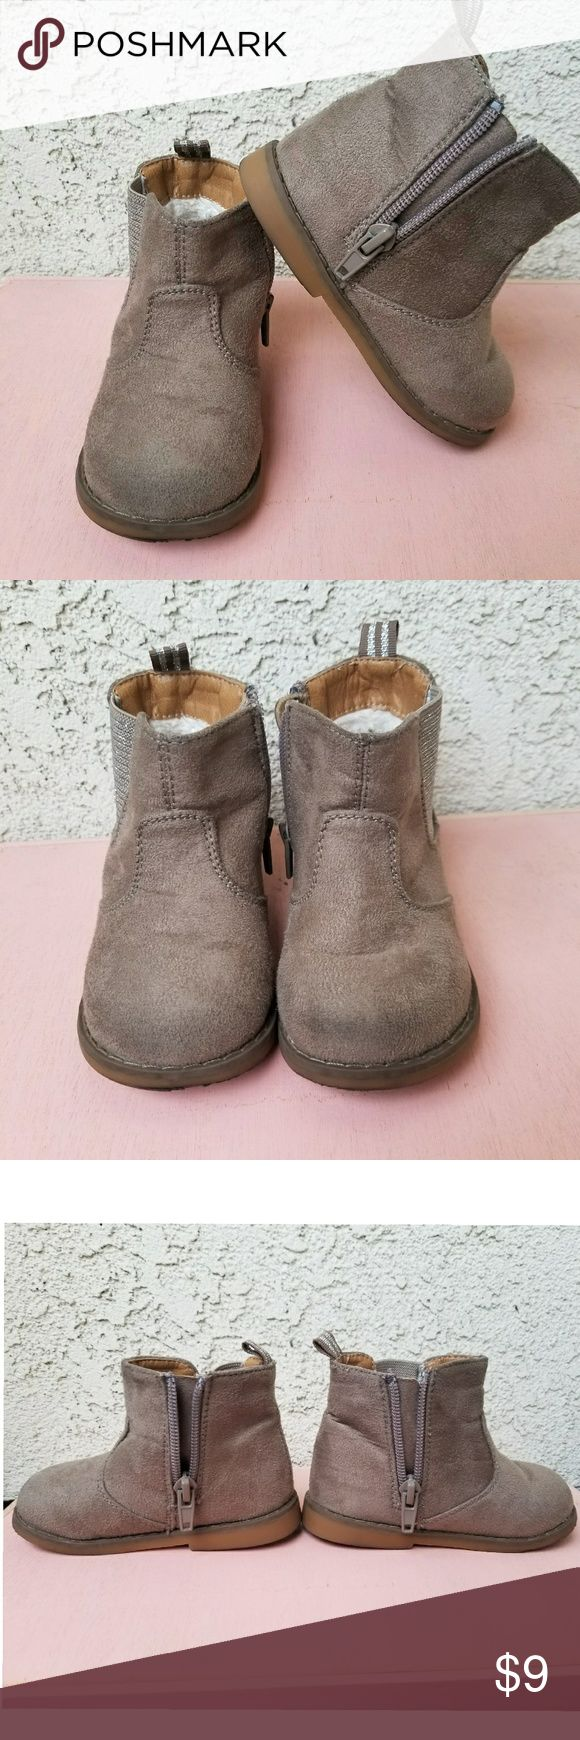 Old Navy Girls Chelsea Ankle Boots Old Navy Girls Chelsea Tan ankle boots. Size 6. Fair condition. Have a little wear on front of boots, but can be worn a little more. Old Navy Shoes Boots